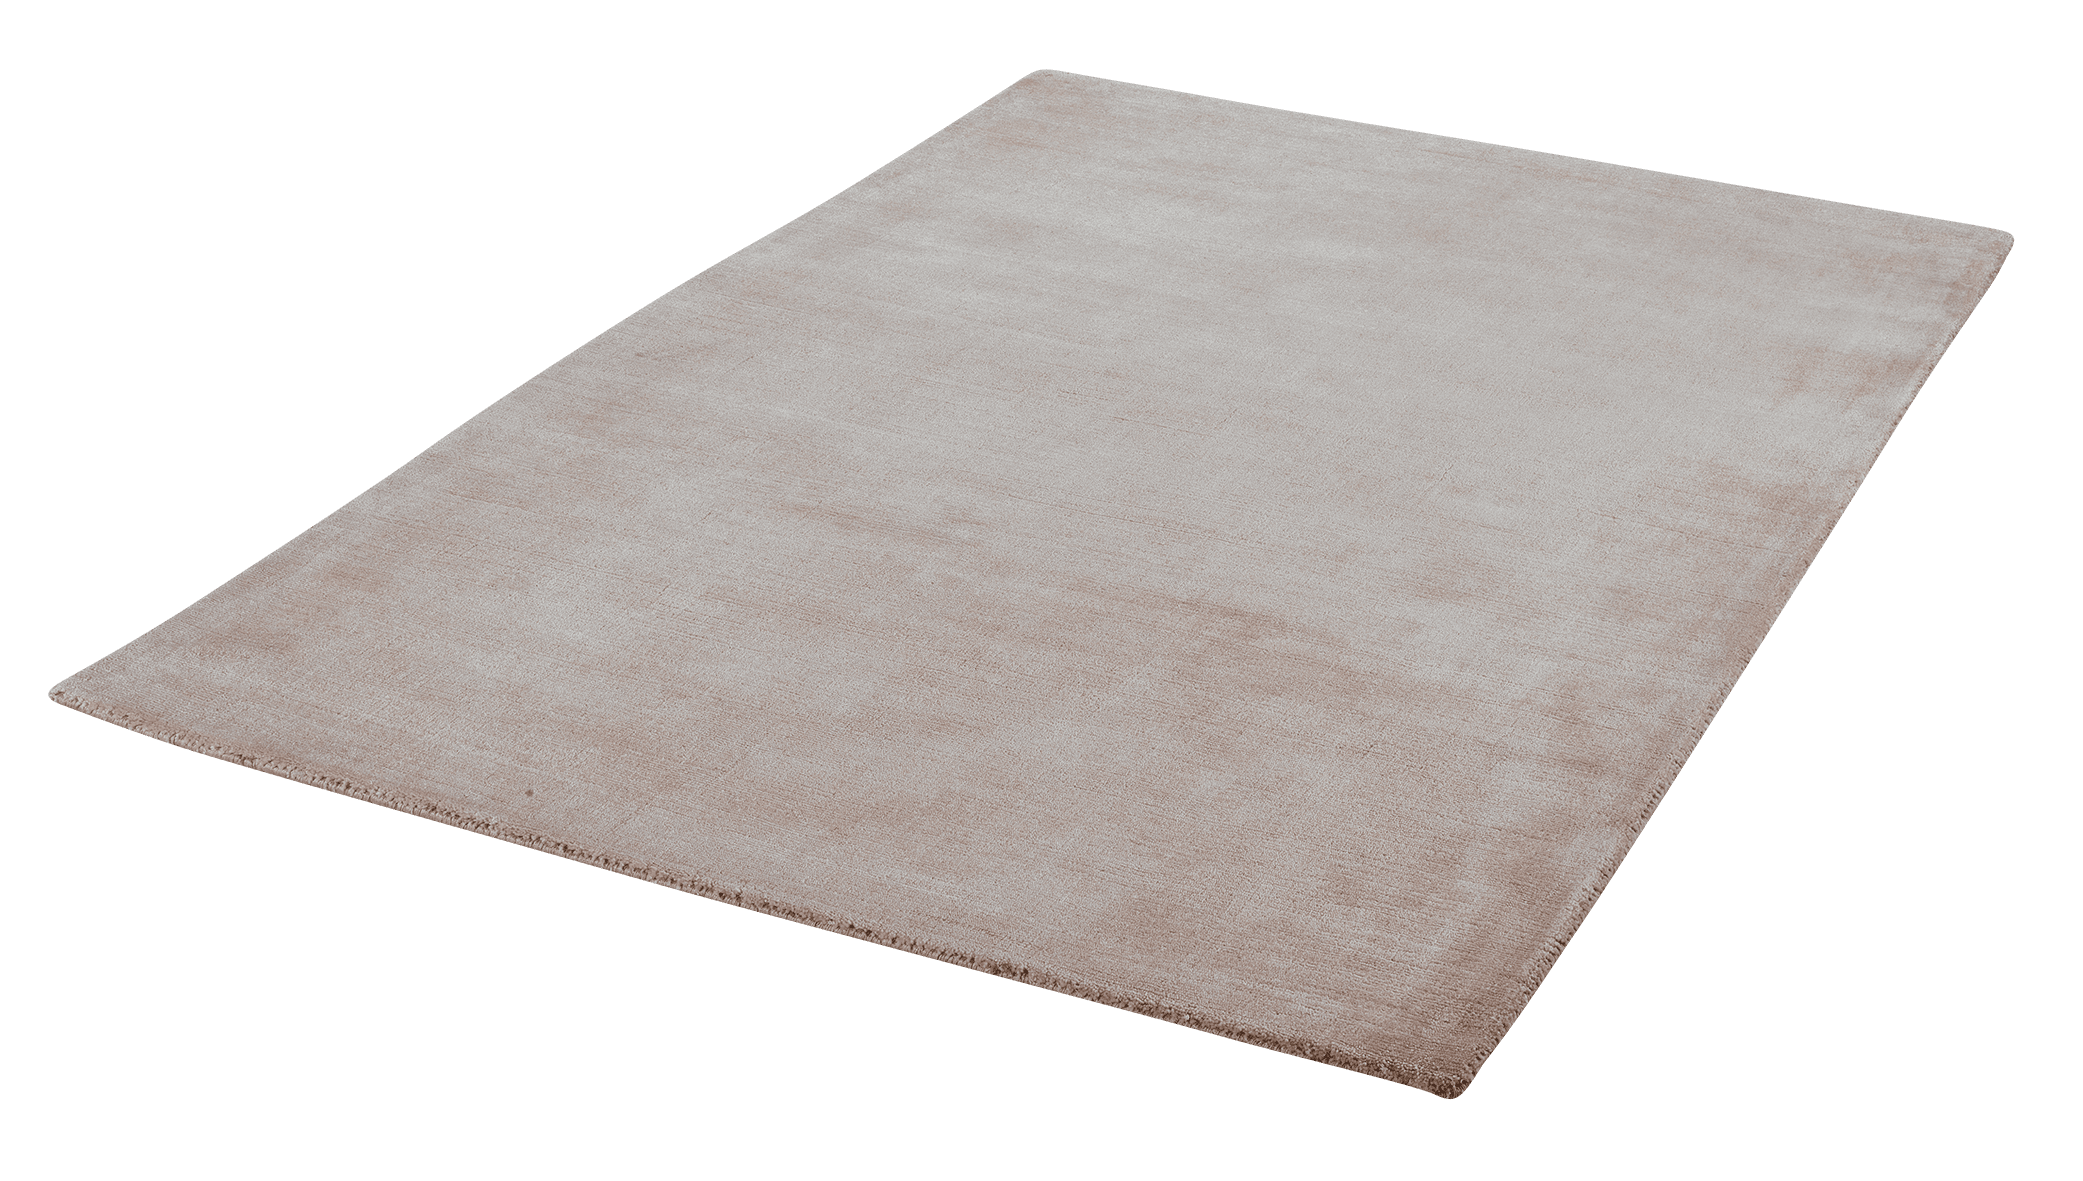 Vloerkleed Lyocell Handgeweven Obsession Breeze of Obsession Ivory 150 - Omid Carpets